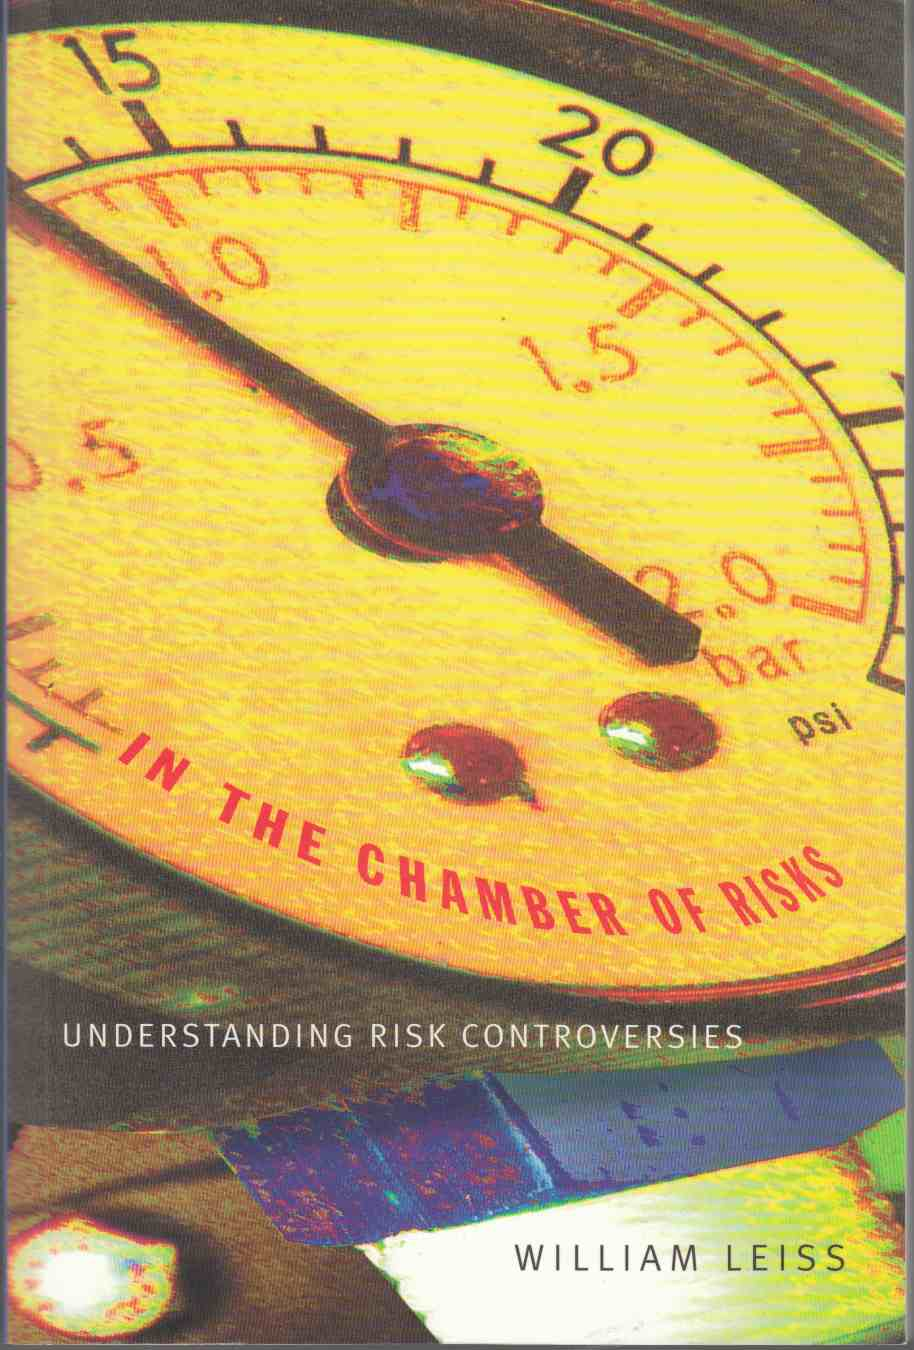 Image for In the Chamber of Risks Understanding Risk Controversies